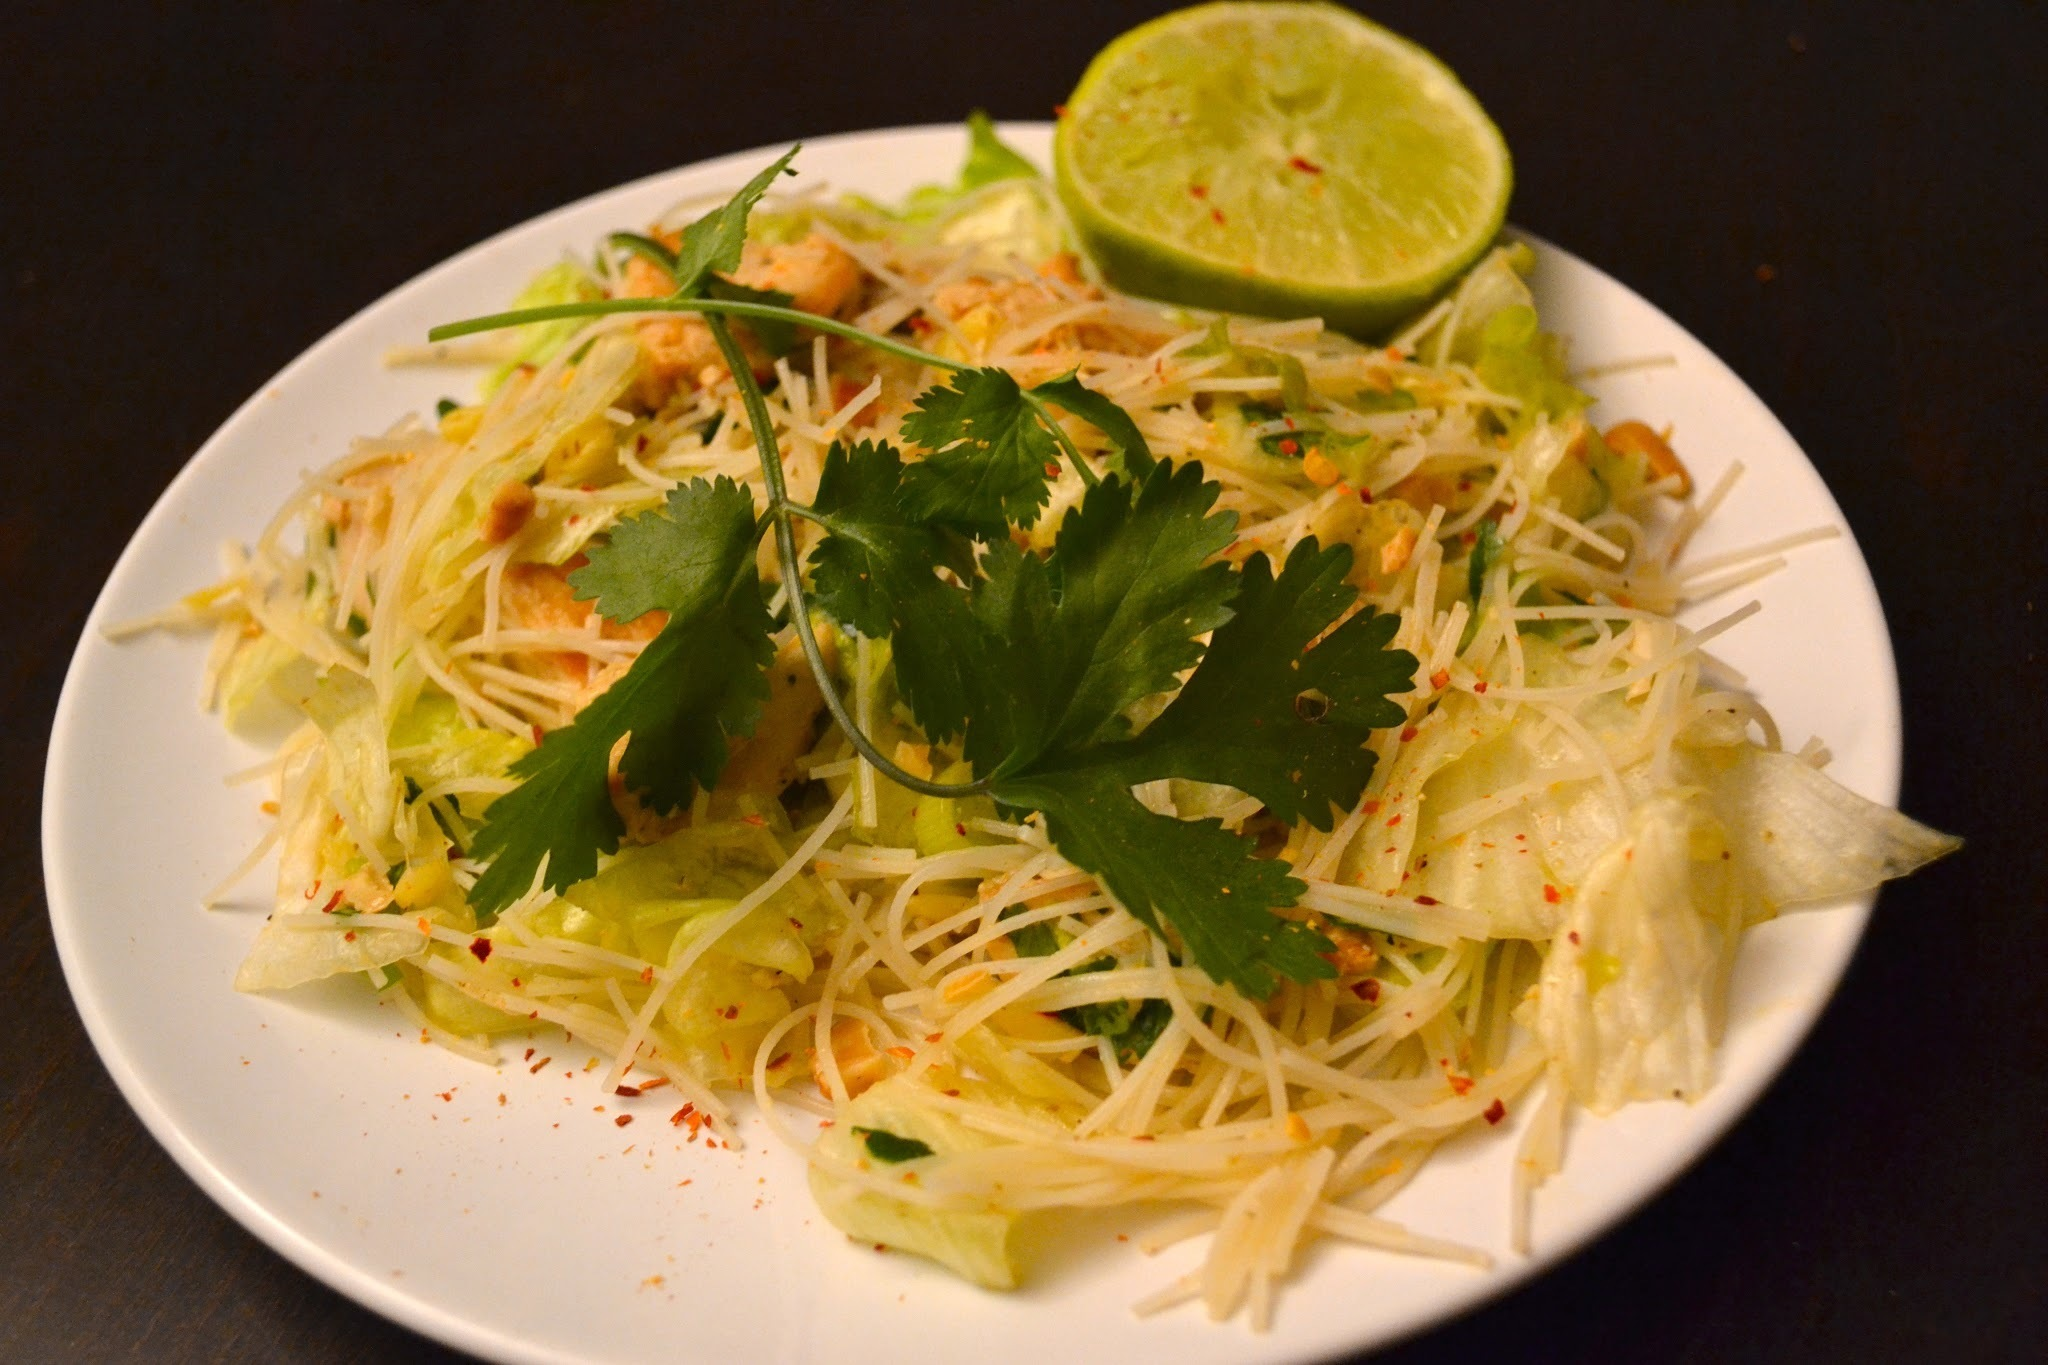 Savoury Wednesday: Asiatischer Glasnudelsalat